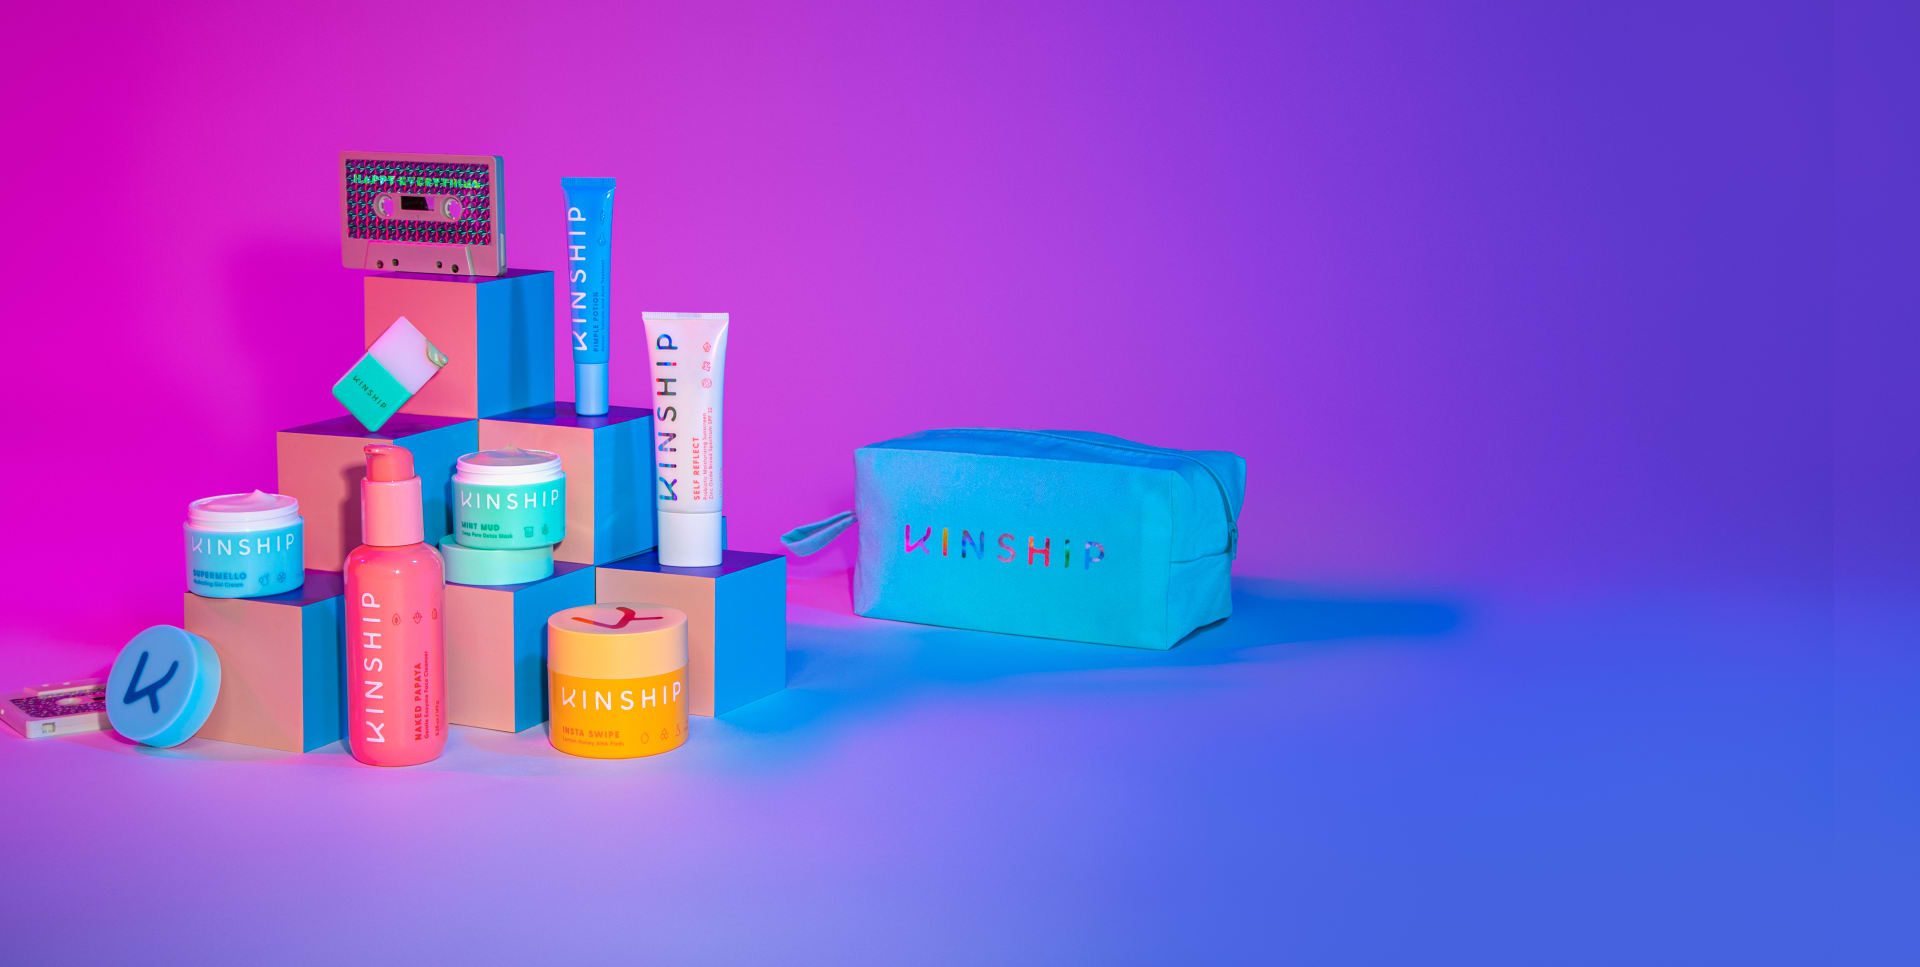 Happy Everything, 6-piece skincare set + dopp kit